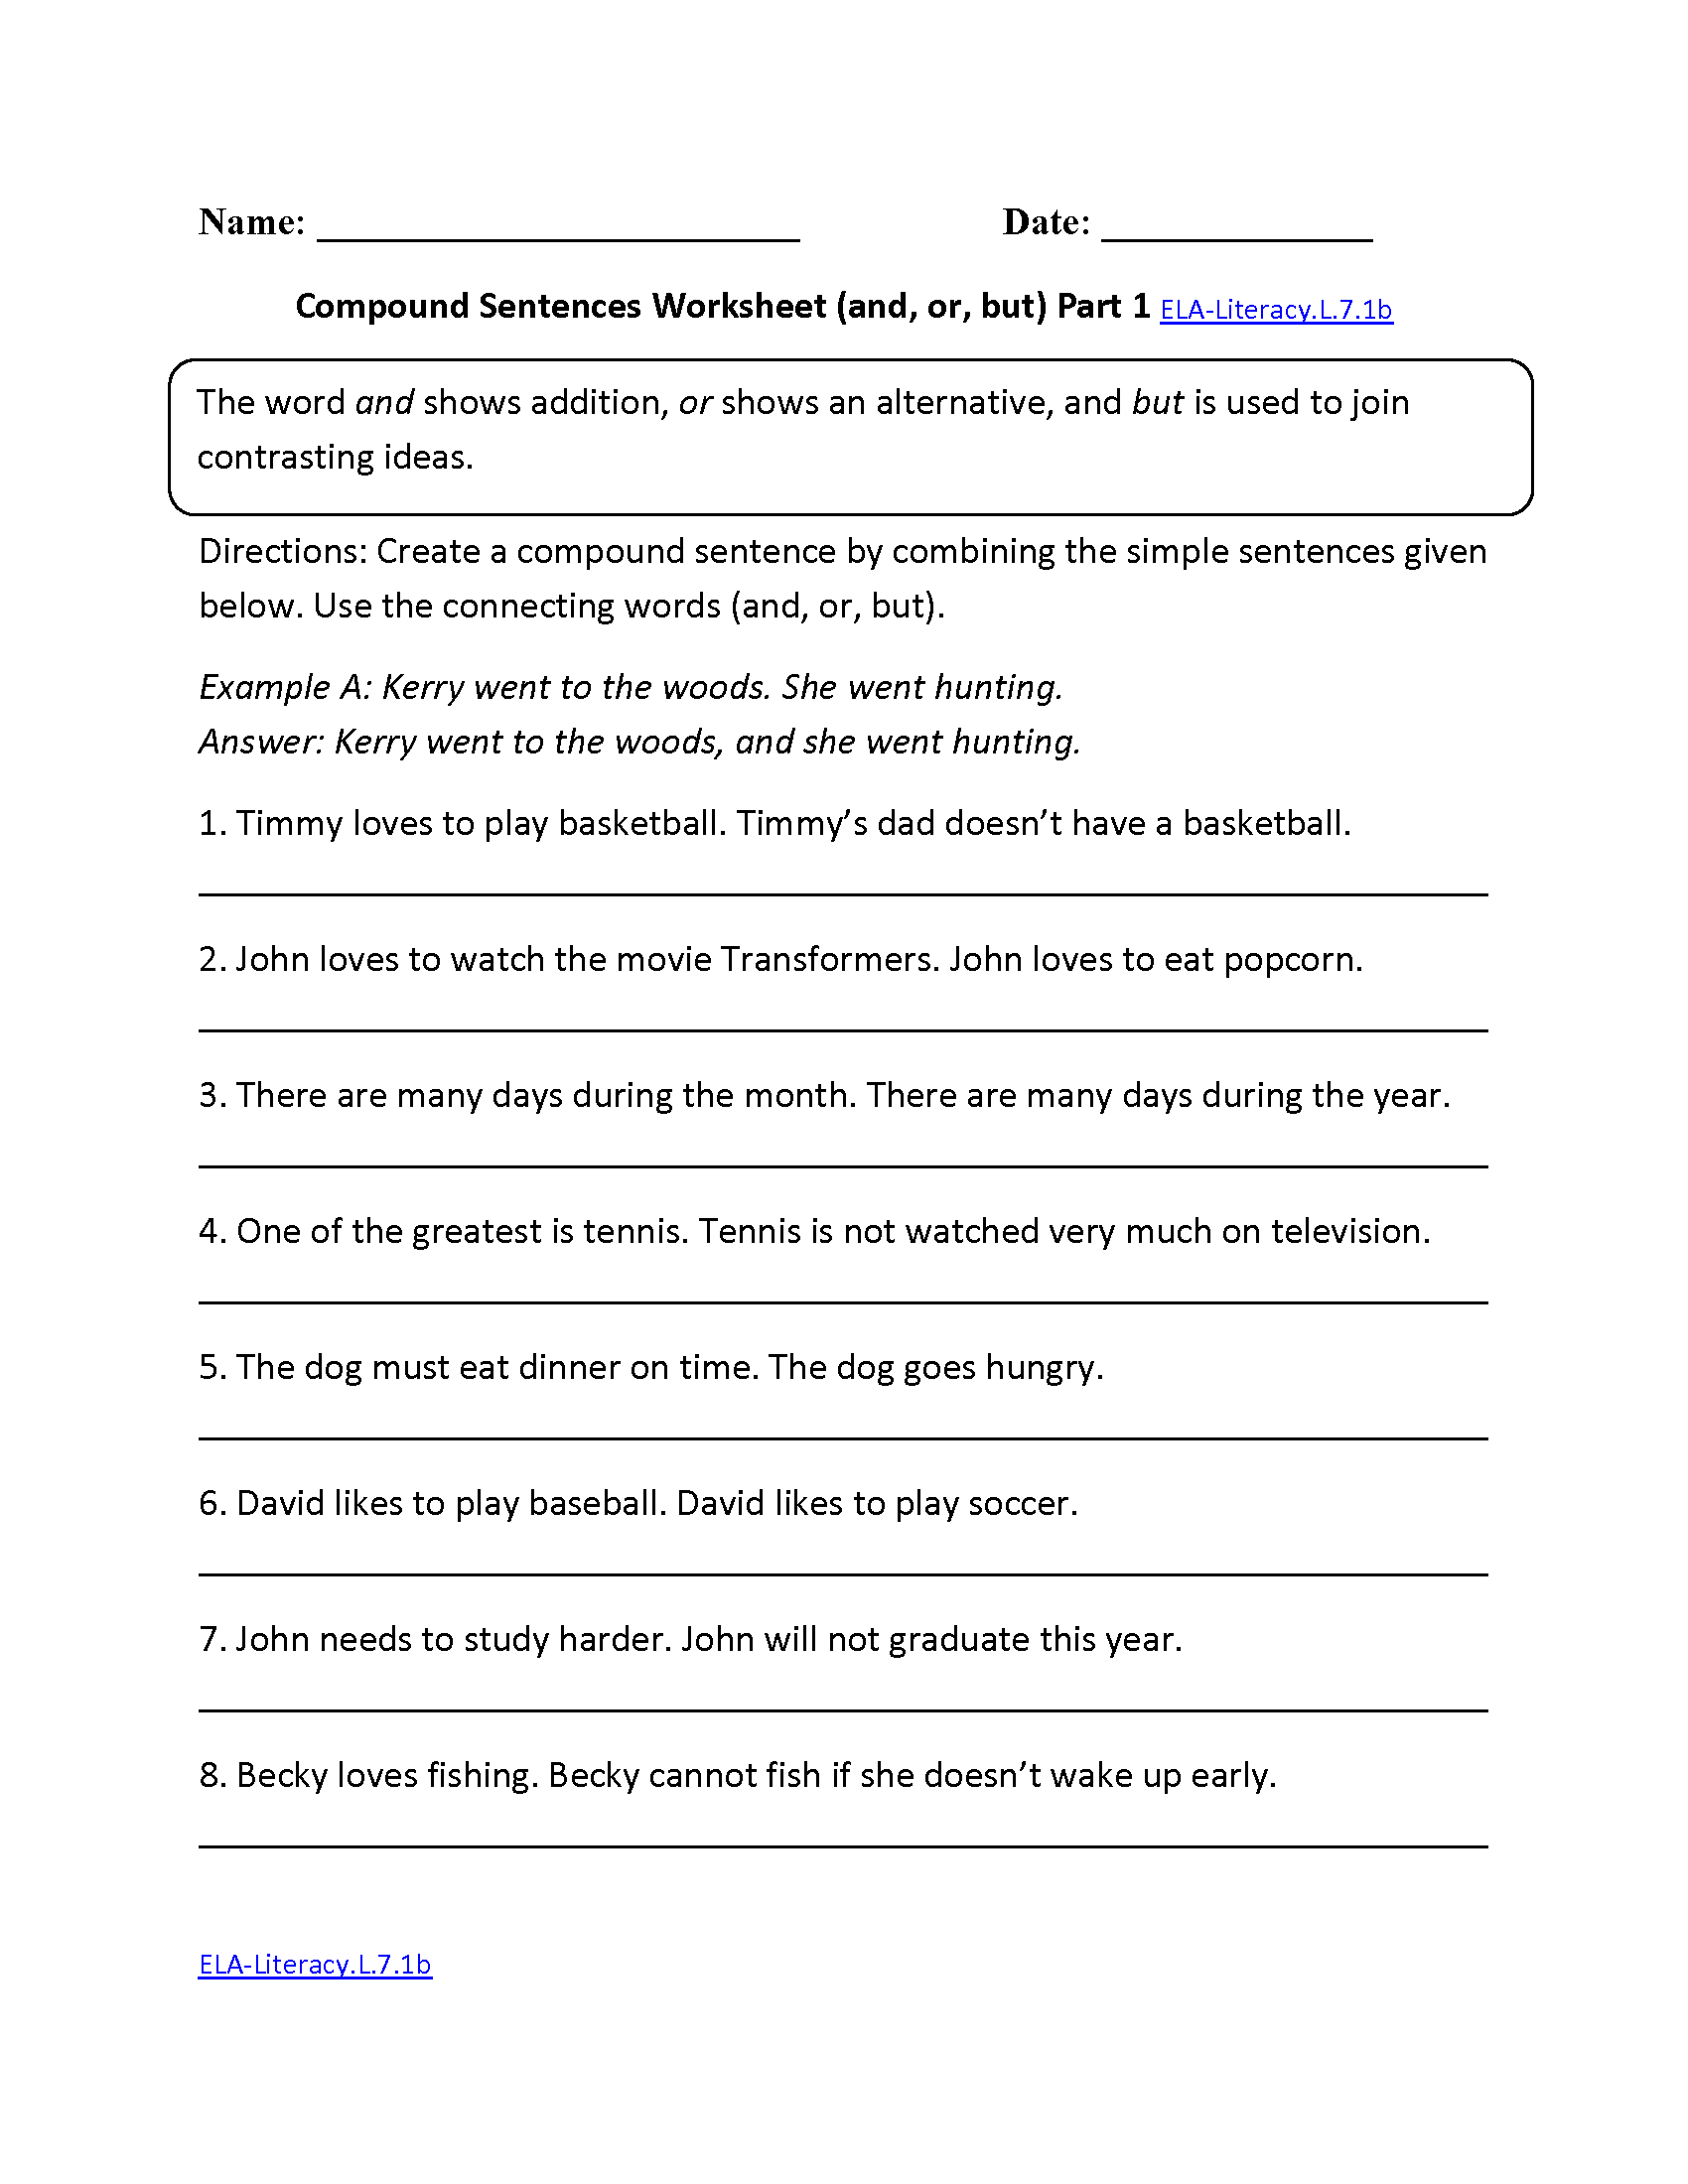 worksheet Fun Language Arts Worksheets 7th grade common core language worksheets compound sentences worksheet ela literacy l 7 1b worksheet